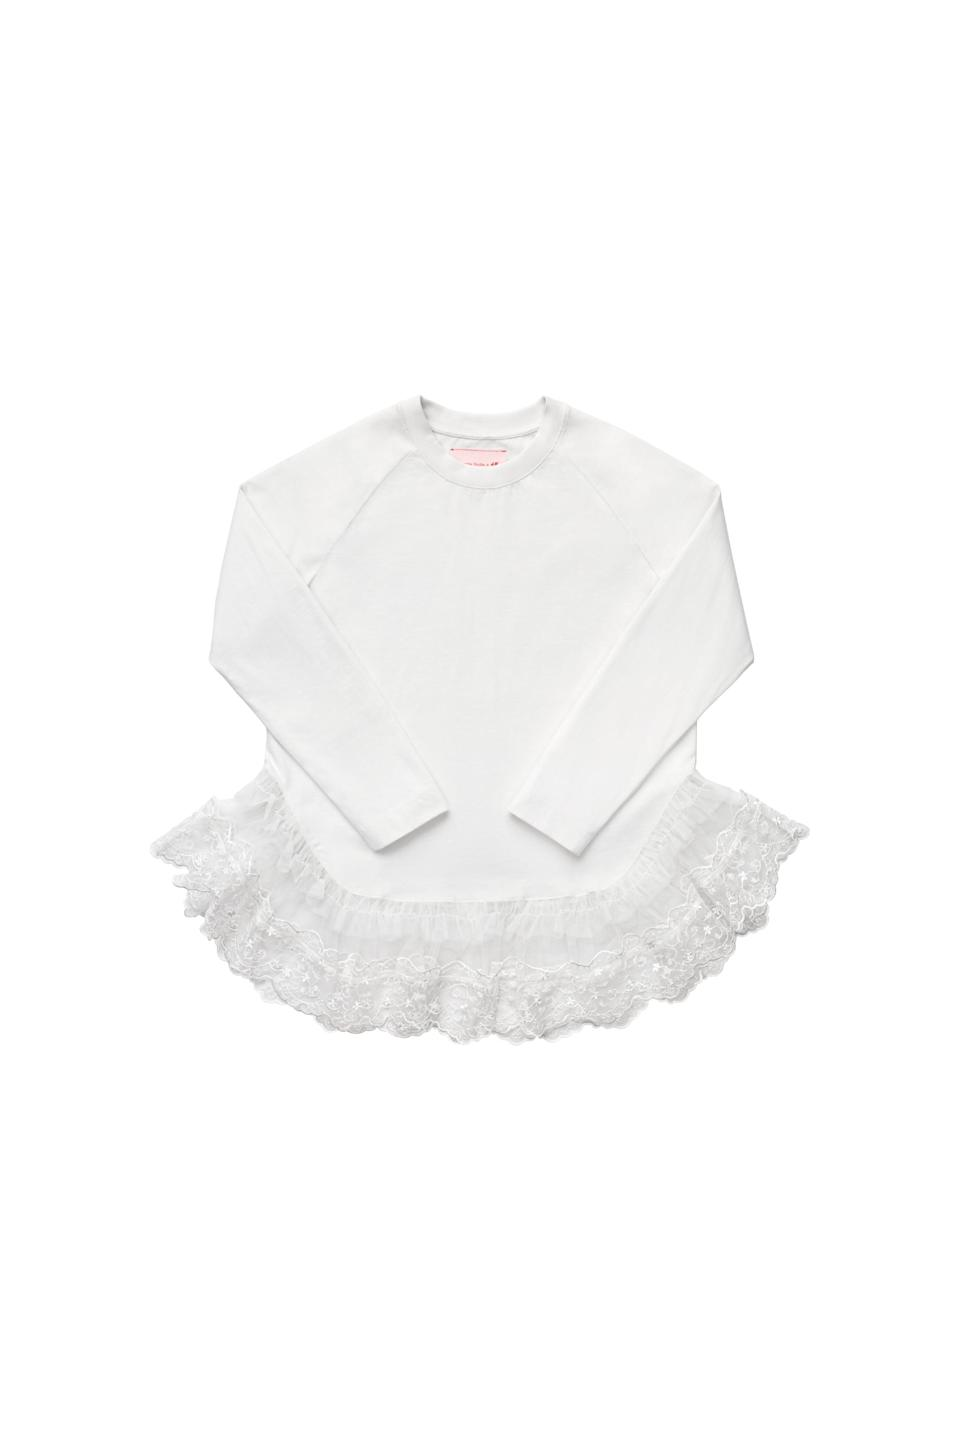 <p><span>Simone Rocha x H&amp;M Lace-Decorated Top</span> ($60).</p>